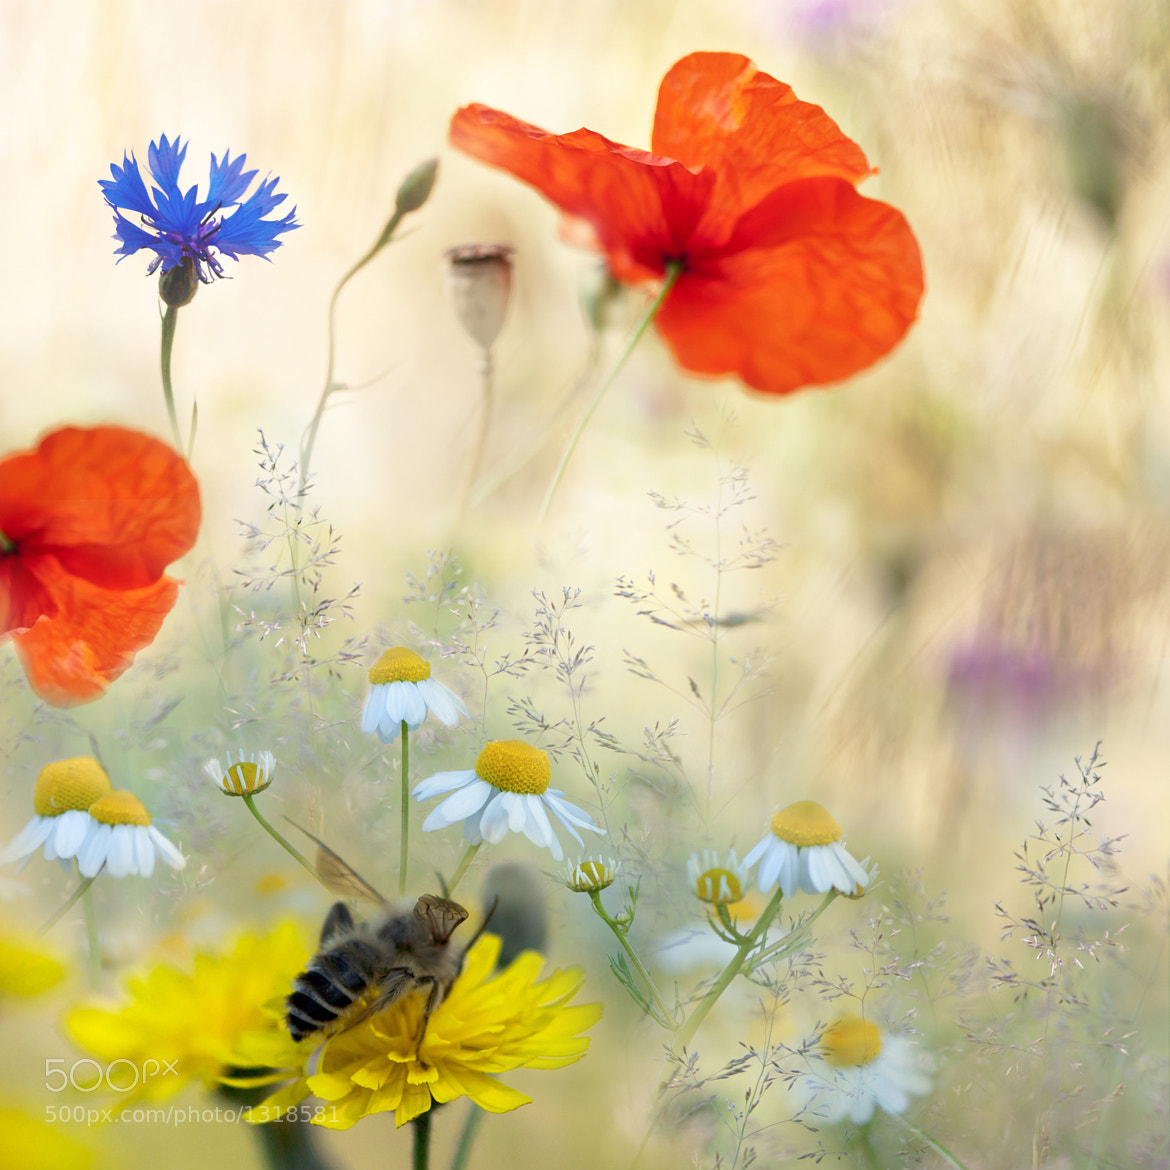 Photograph Poppies in the summer by Teuni Stevense on 500px